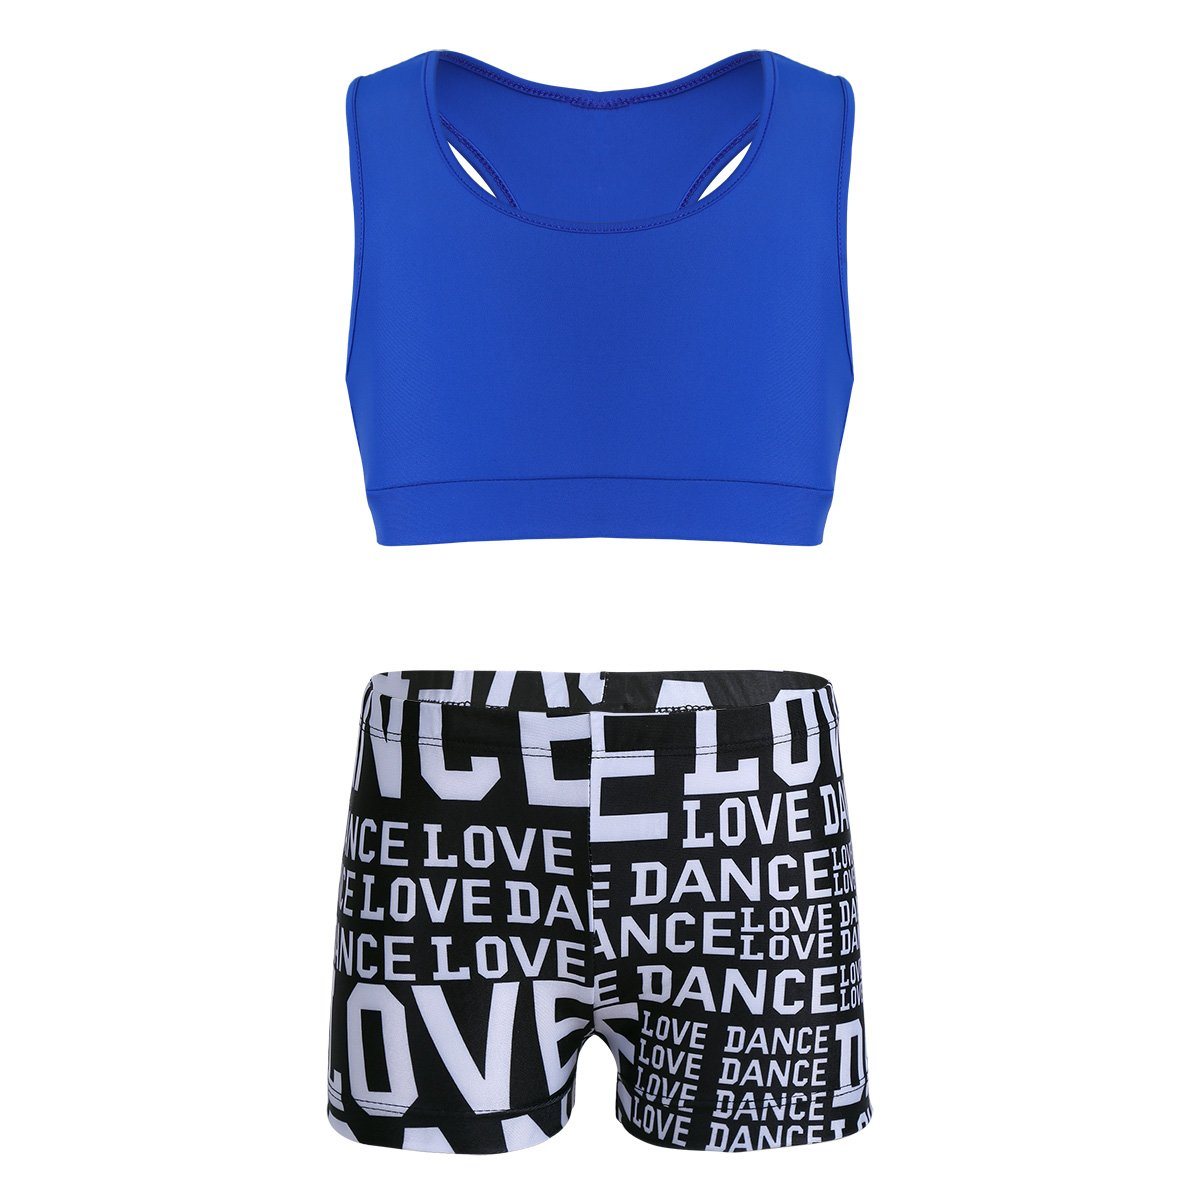 YiZYiF Child Girls 2-Piece Tank Top with Love Dance Bottoms set for Gymnastics Dance Gym Sports Blue 5-6